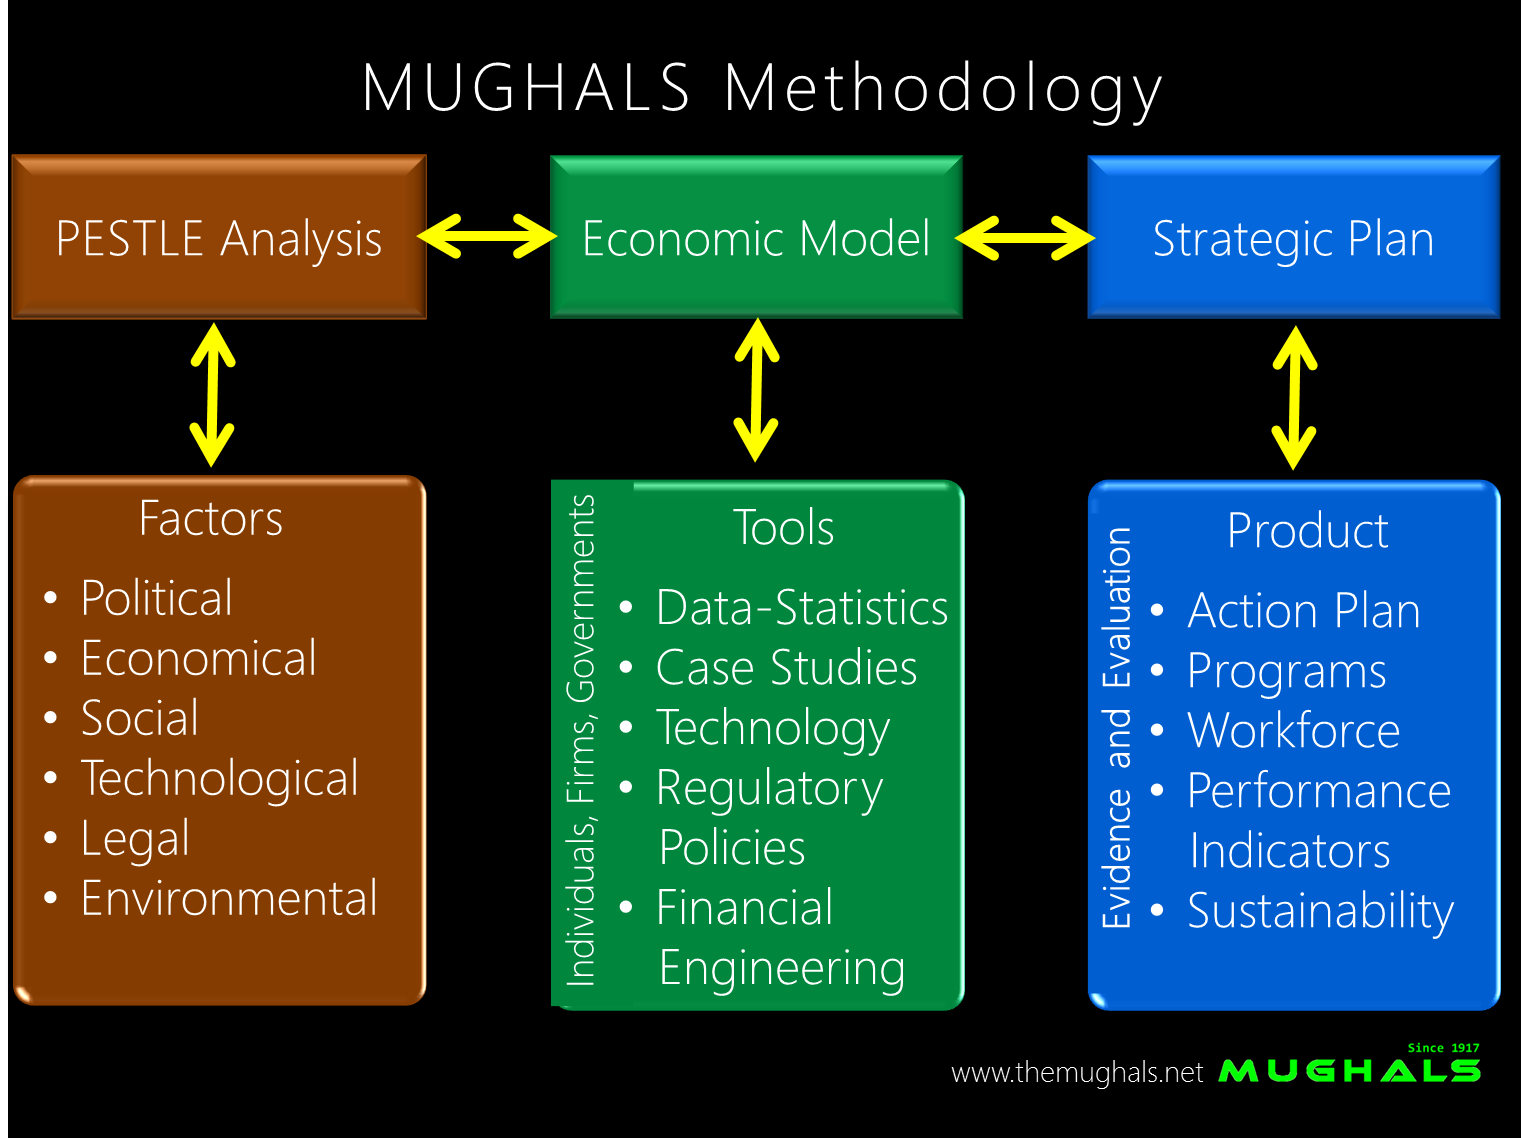 https://sites.google.com/a/themughals.net/www/home-mughals/business/MUGHALS_Web_Methodology.png